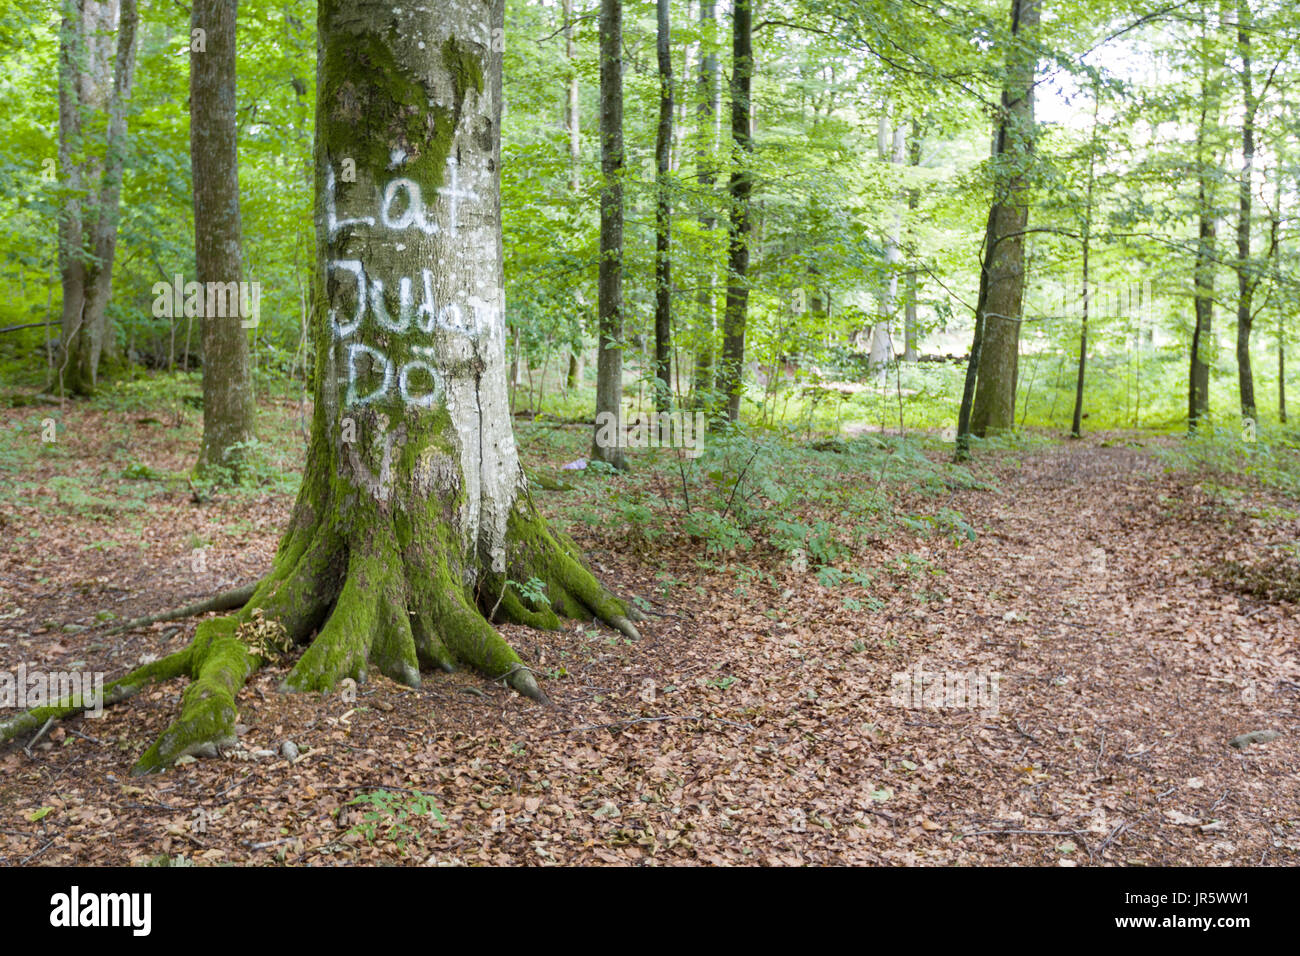 Anti semitic graffiti in swedish 'Let The Jews Die' spray painted on tree in forest in Floda, Sweden  Model Release: No.  Property Release: No. - Stock Image